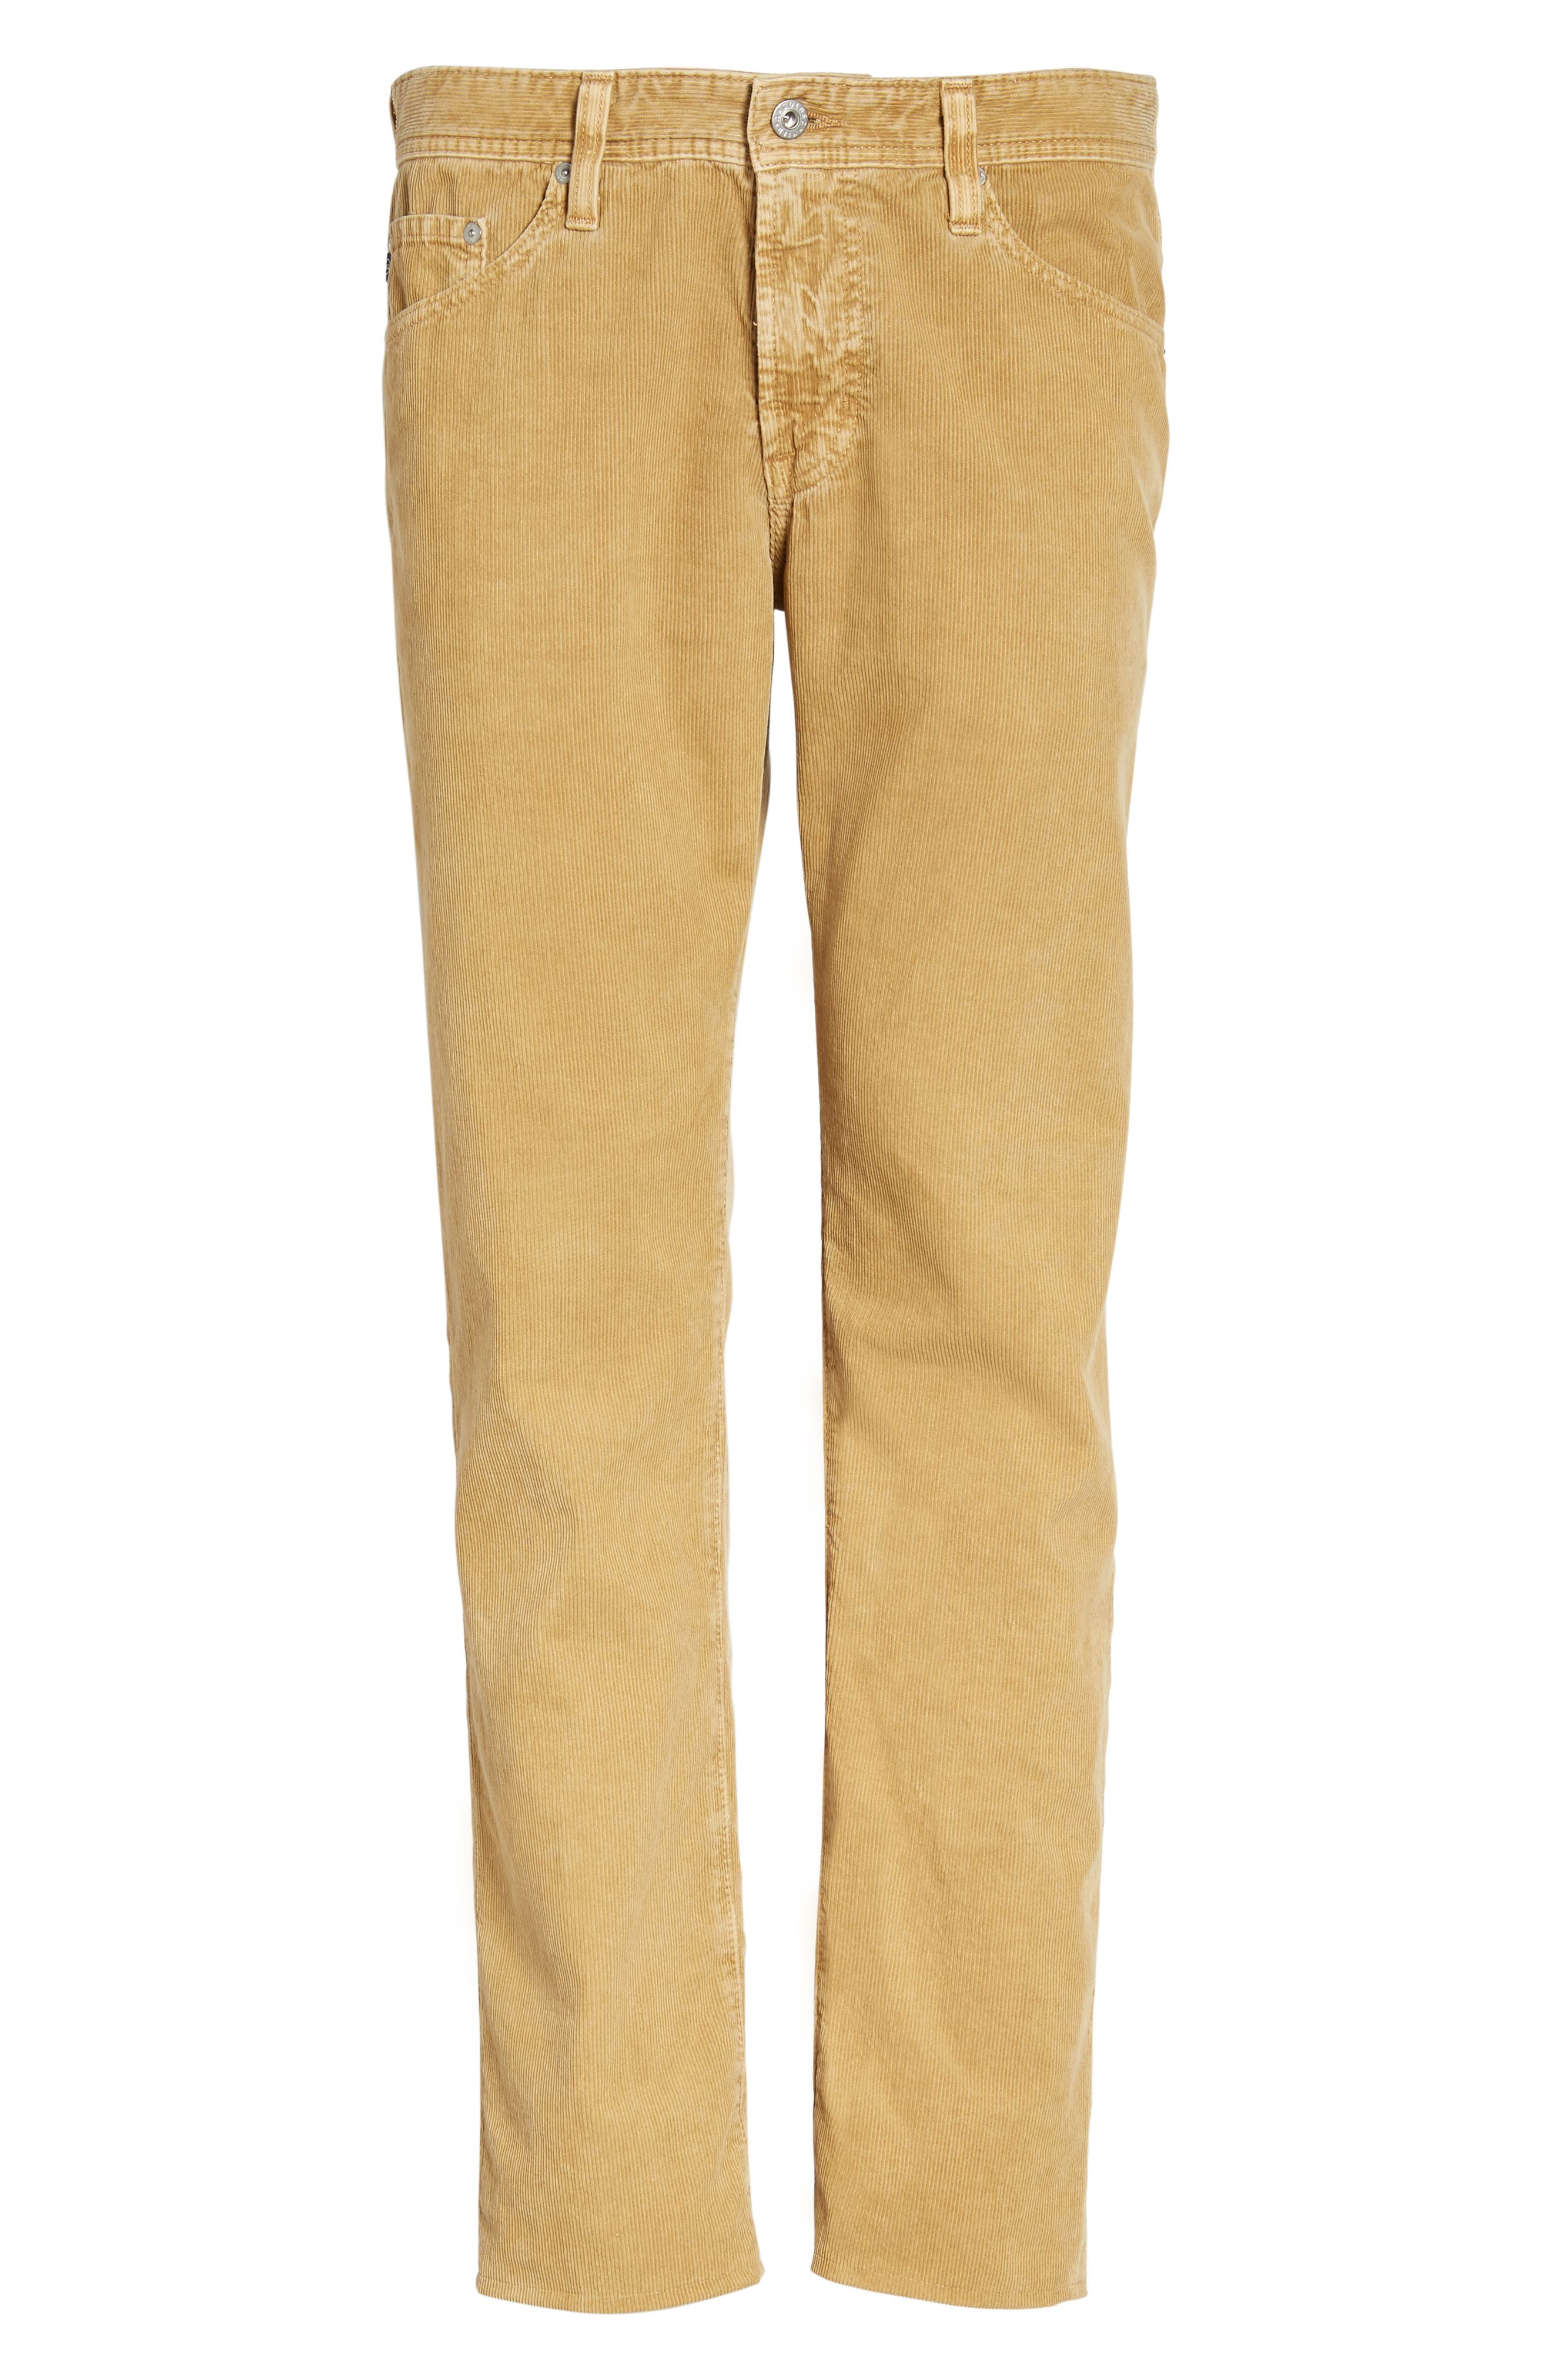 'Graduate' Tailored Straight Leg Corduroy Pants,                             Alternate thumbnail 71, color,